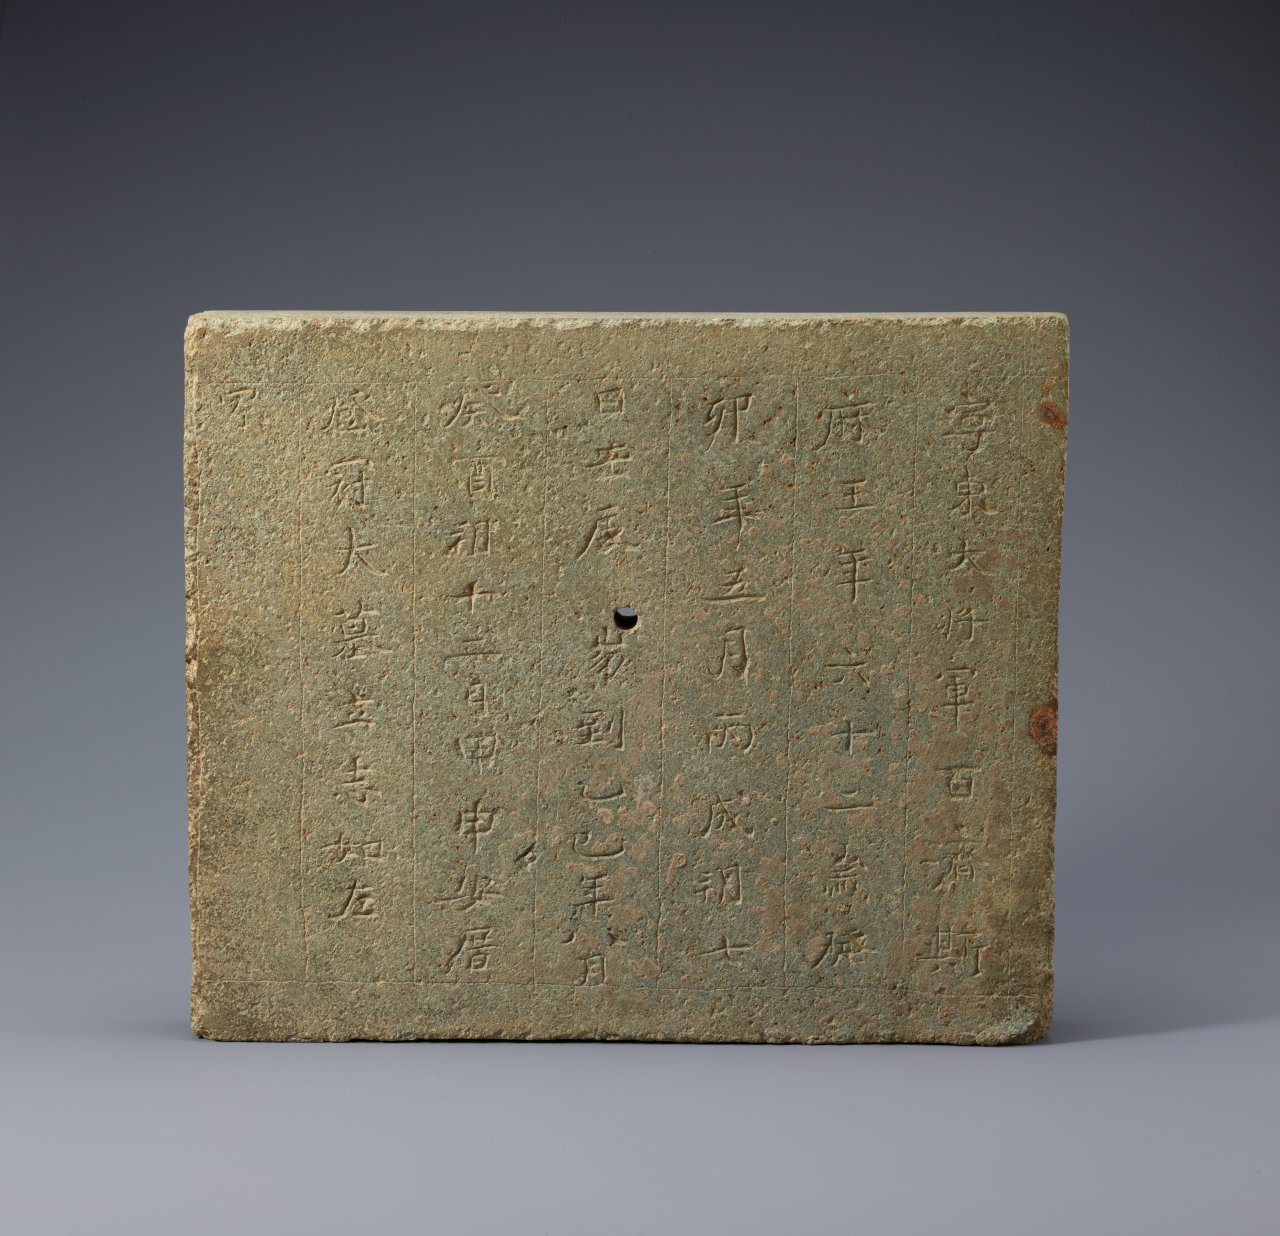 Stone plaque for King Muryeong (Gongju National Museum)